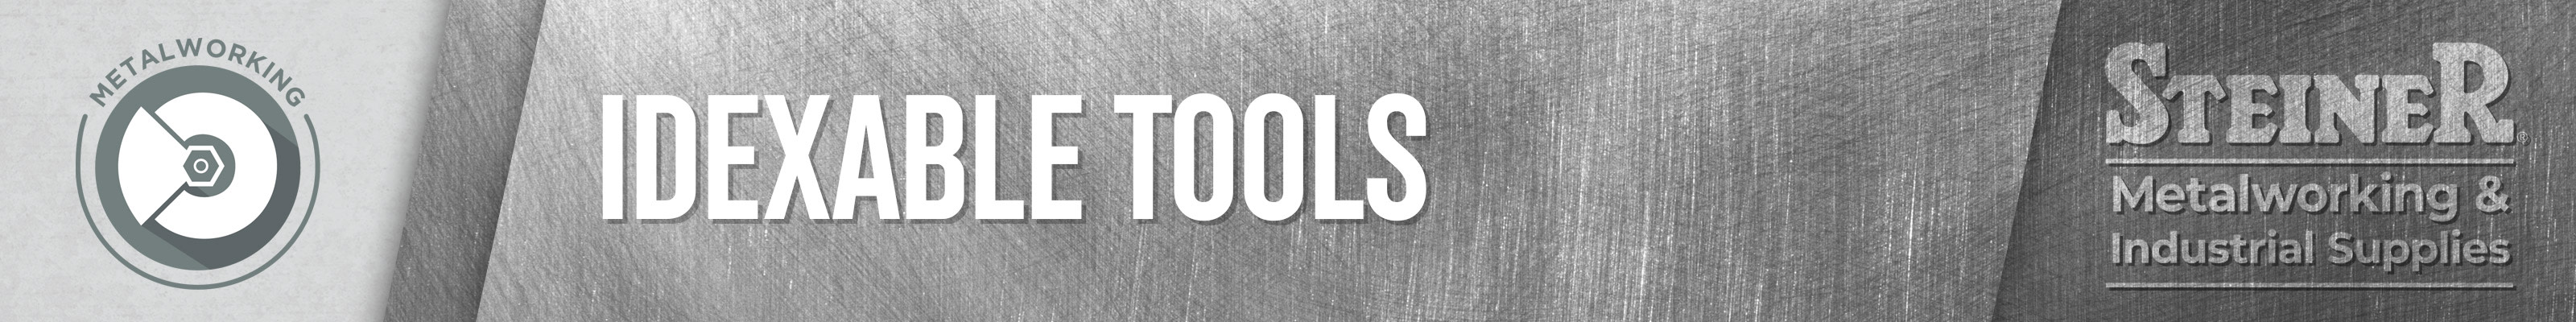 Indexable Tools